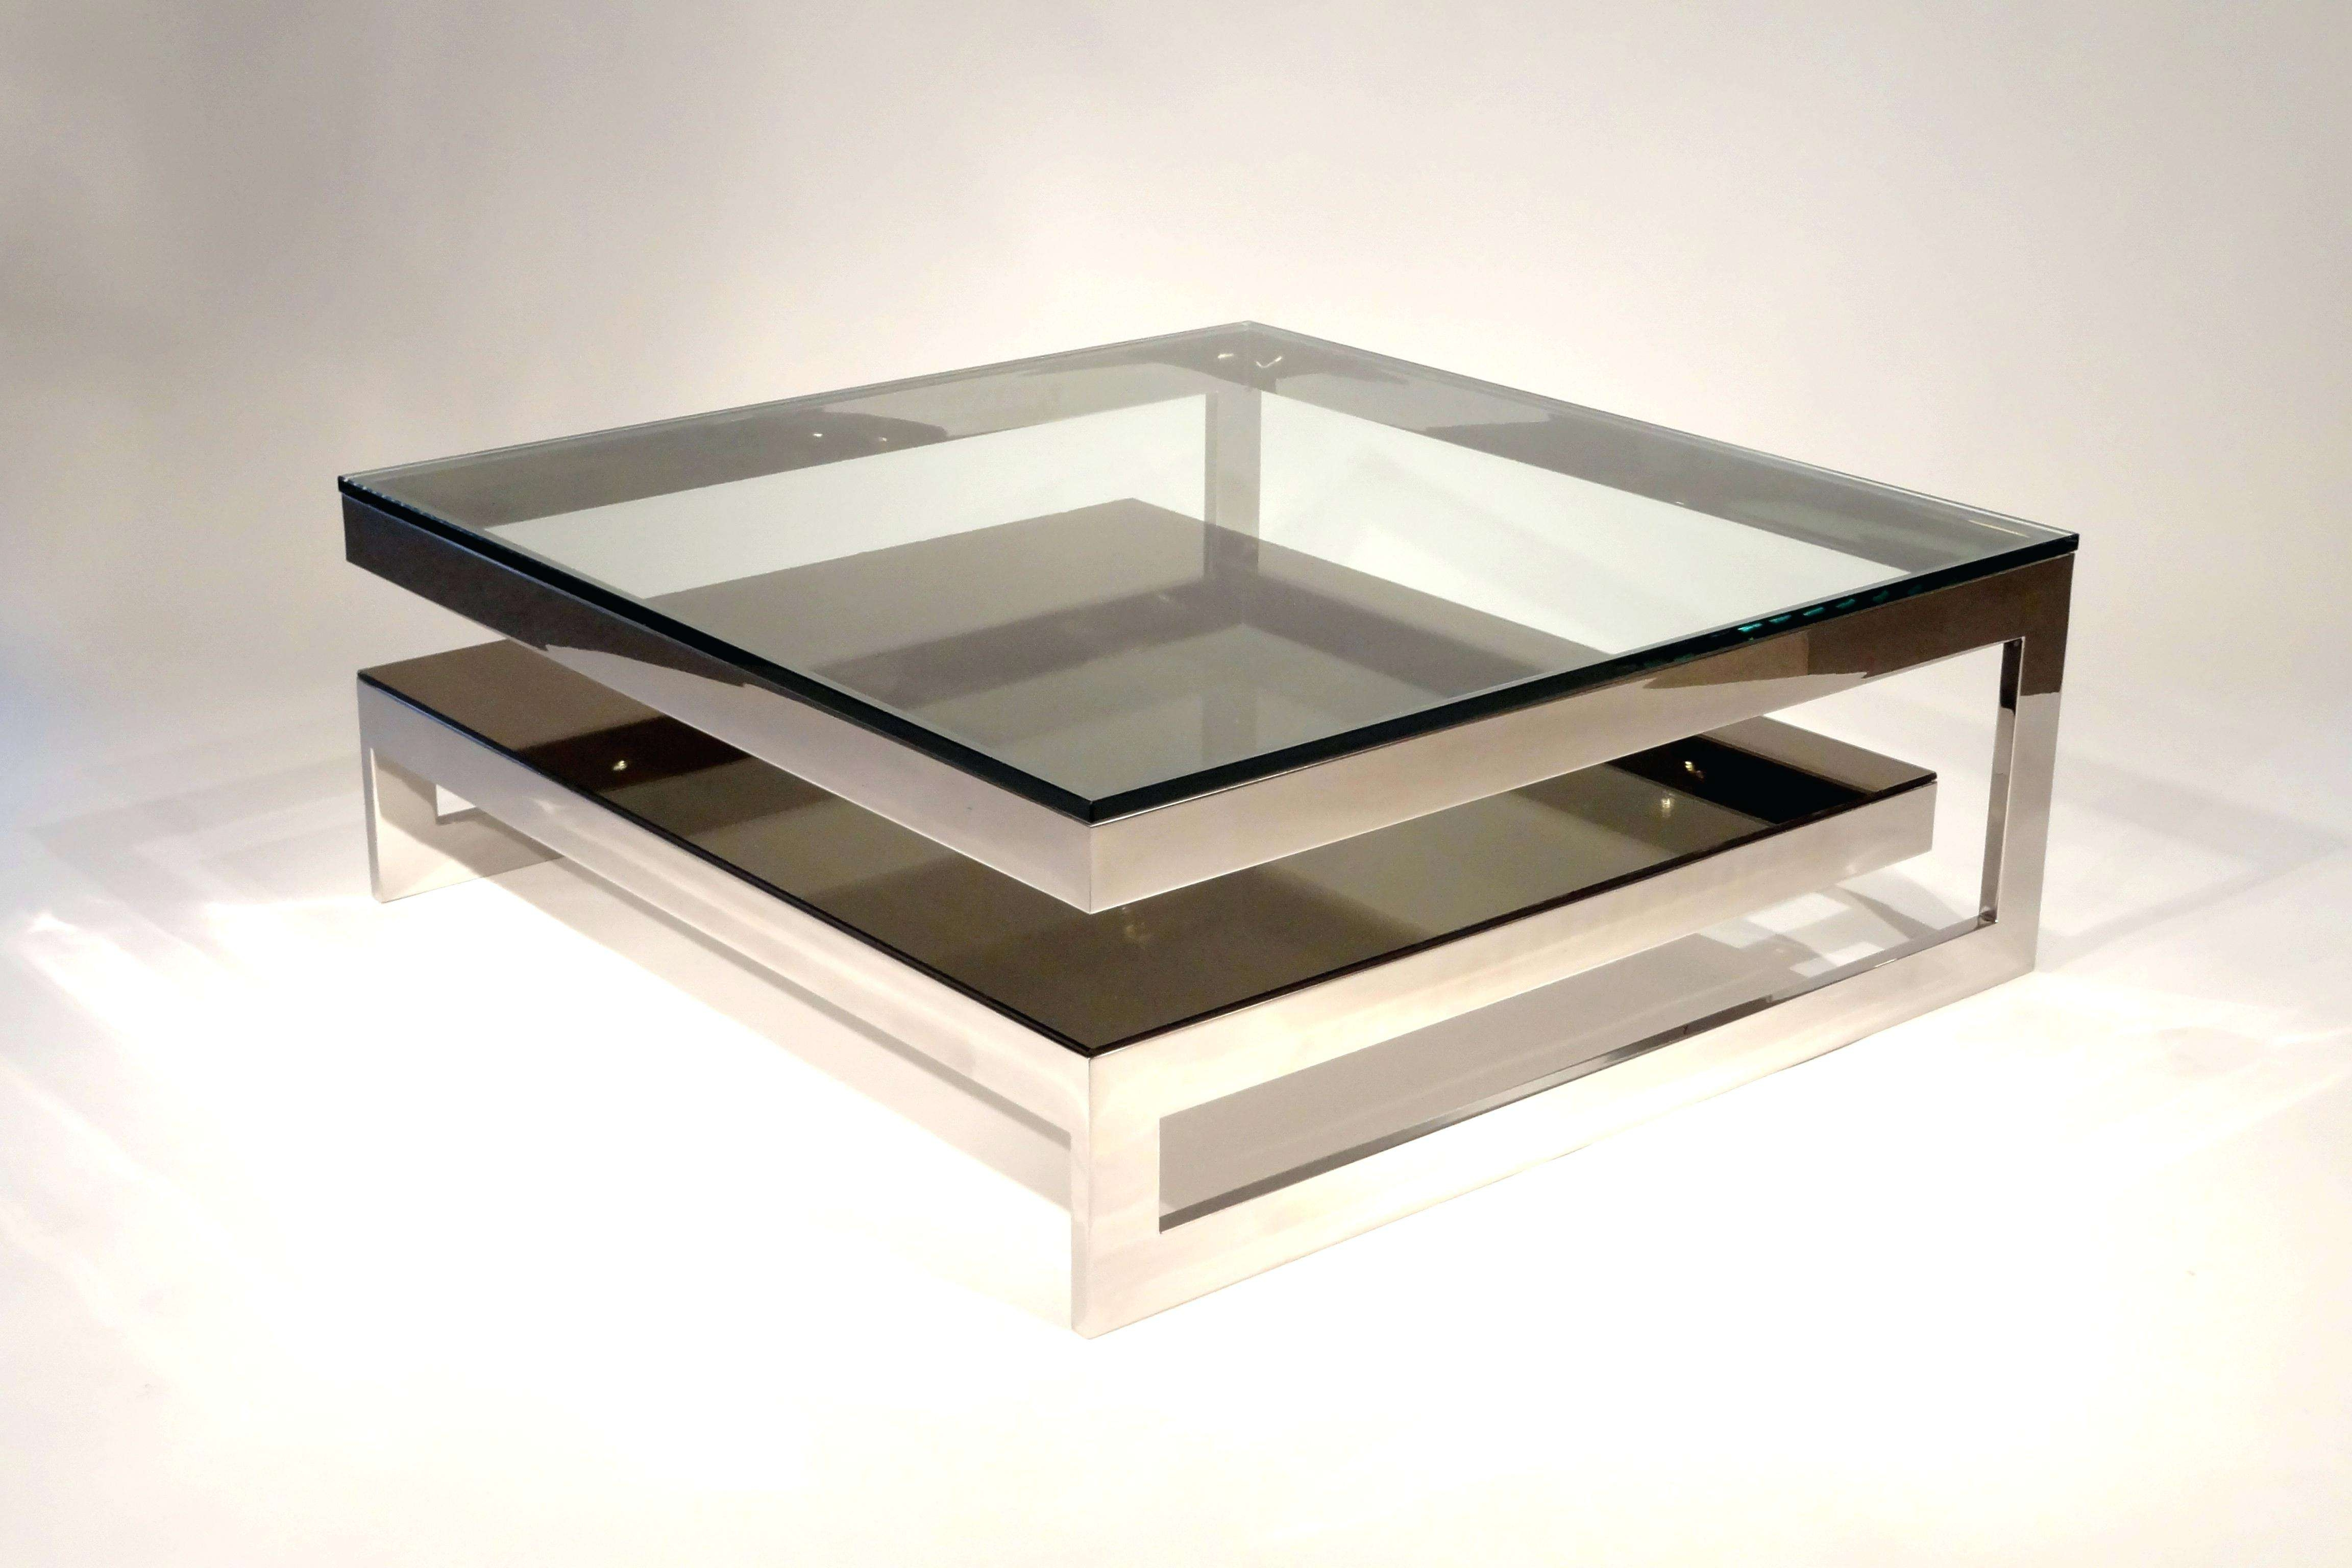 2018 Square Coffee Tables Inside Coffee Table : Living Room End Table Sets Black Square Coffee (View 1 of 20)